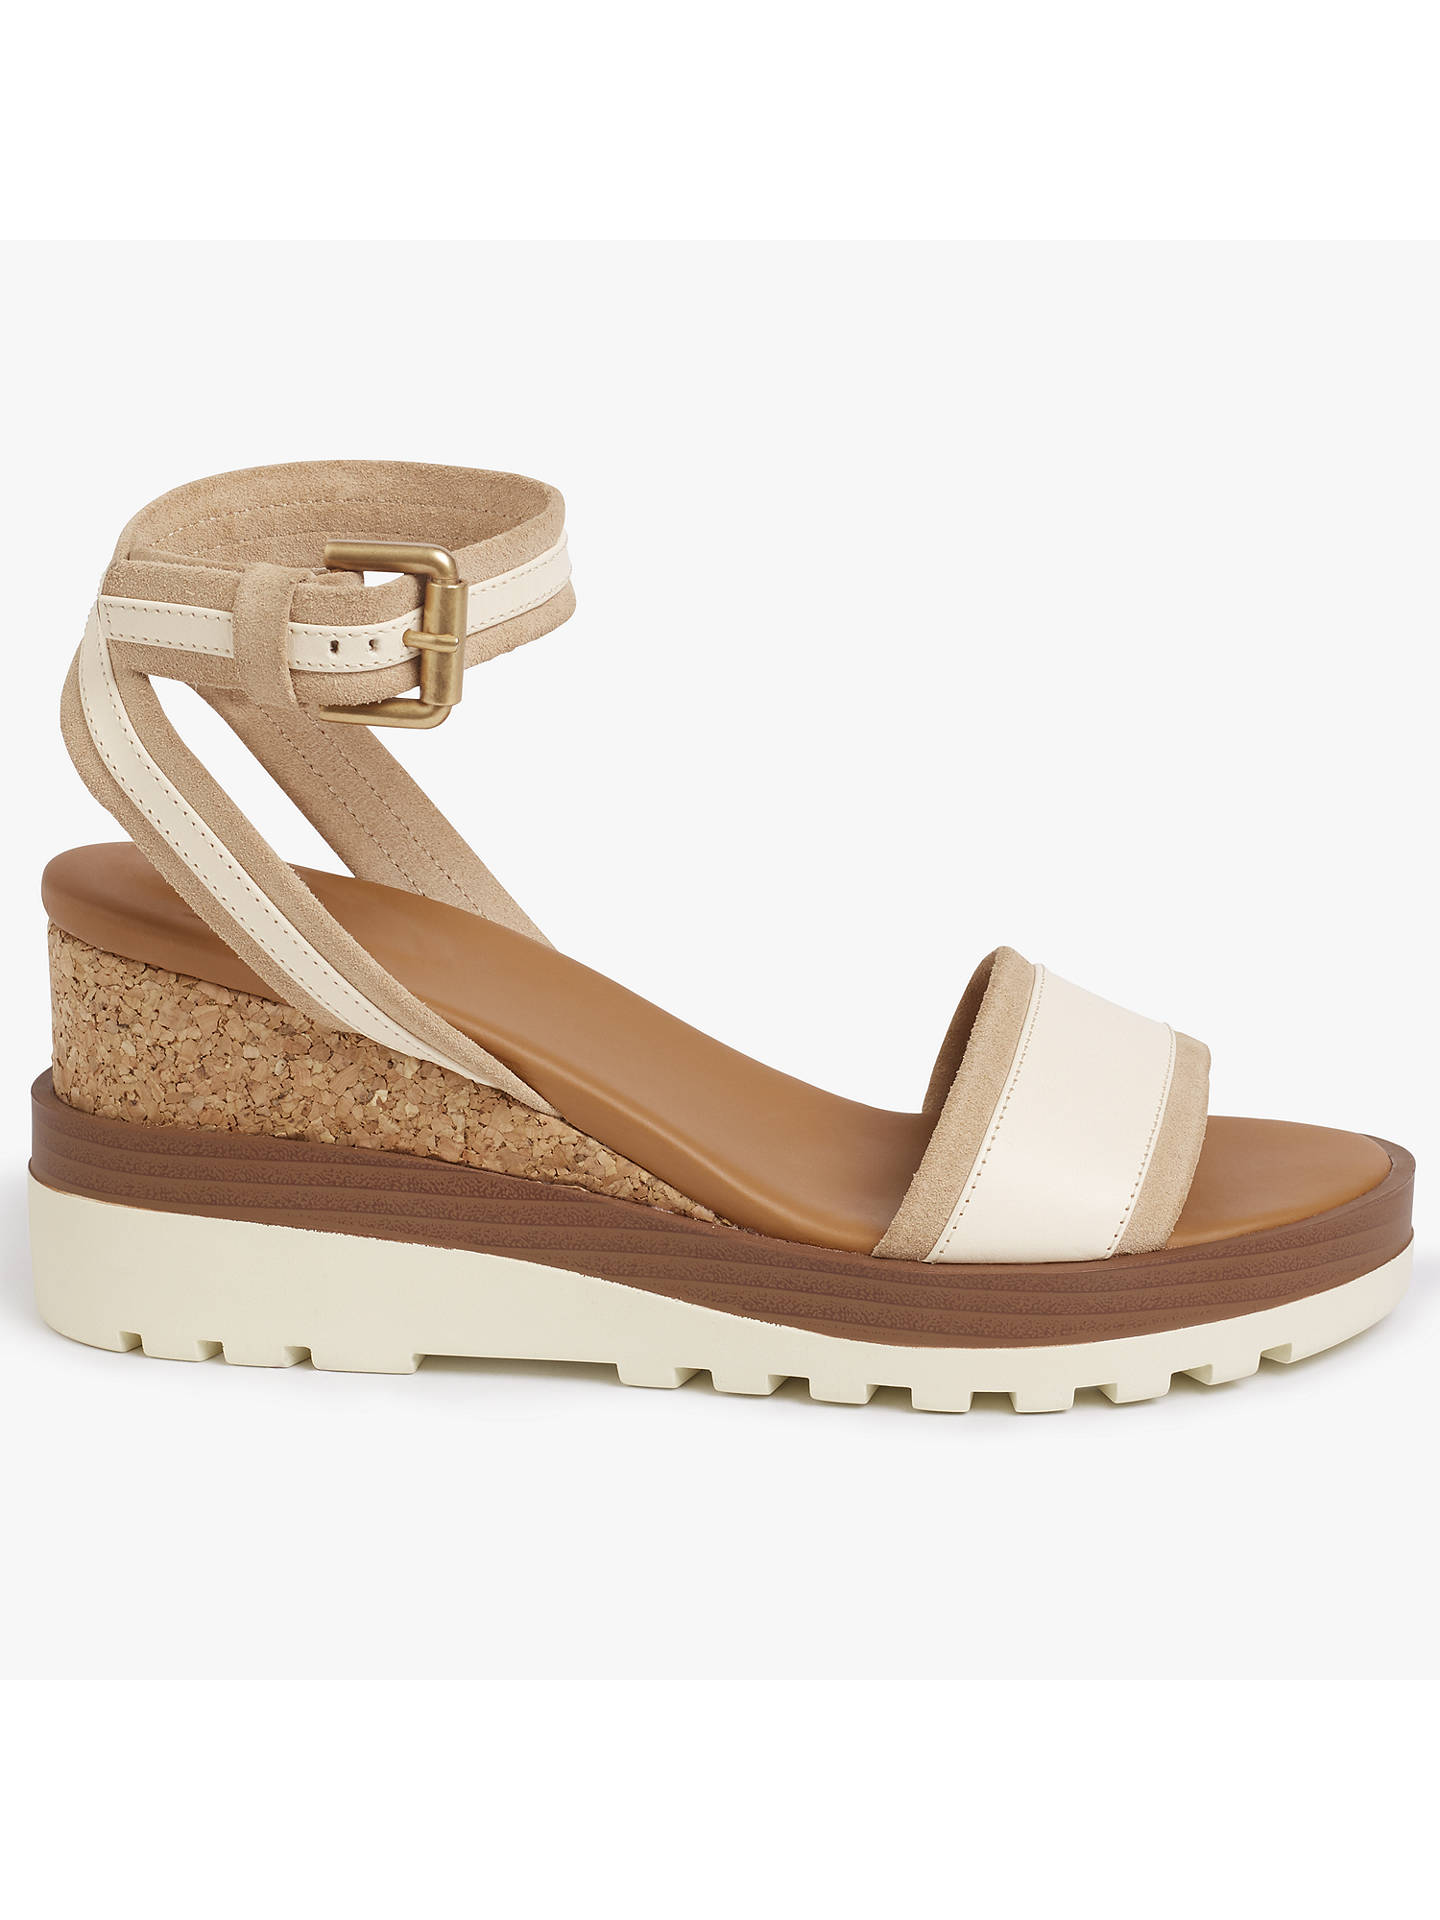 5f1cd8fabcf8 Buy See by Chloé Robin Wedge Sandals